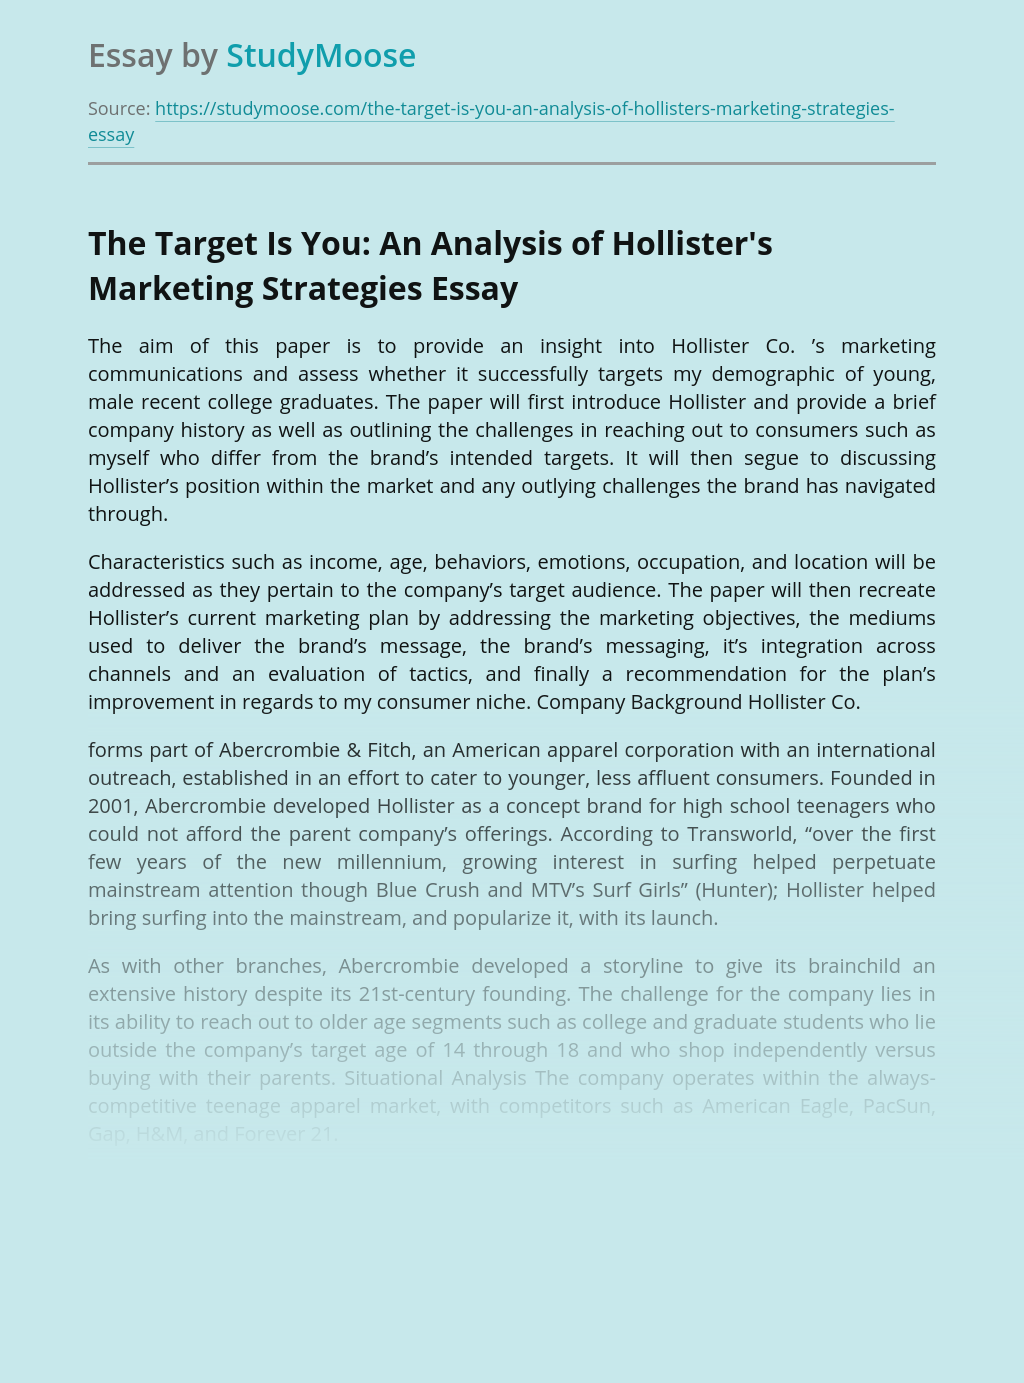 The Target Is You: An Analysis of Hollister's Marketing Strategies